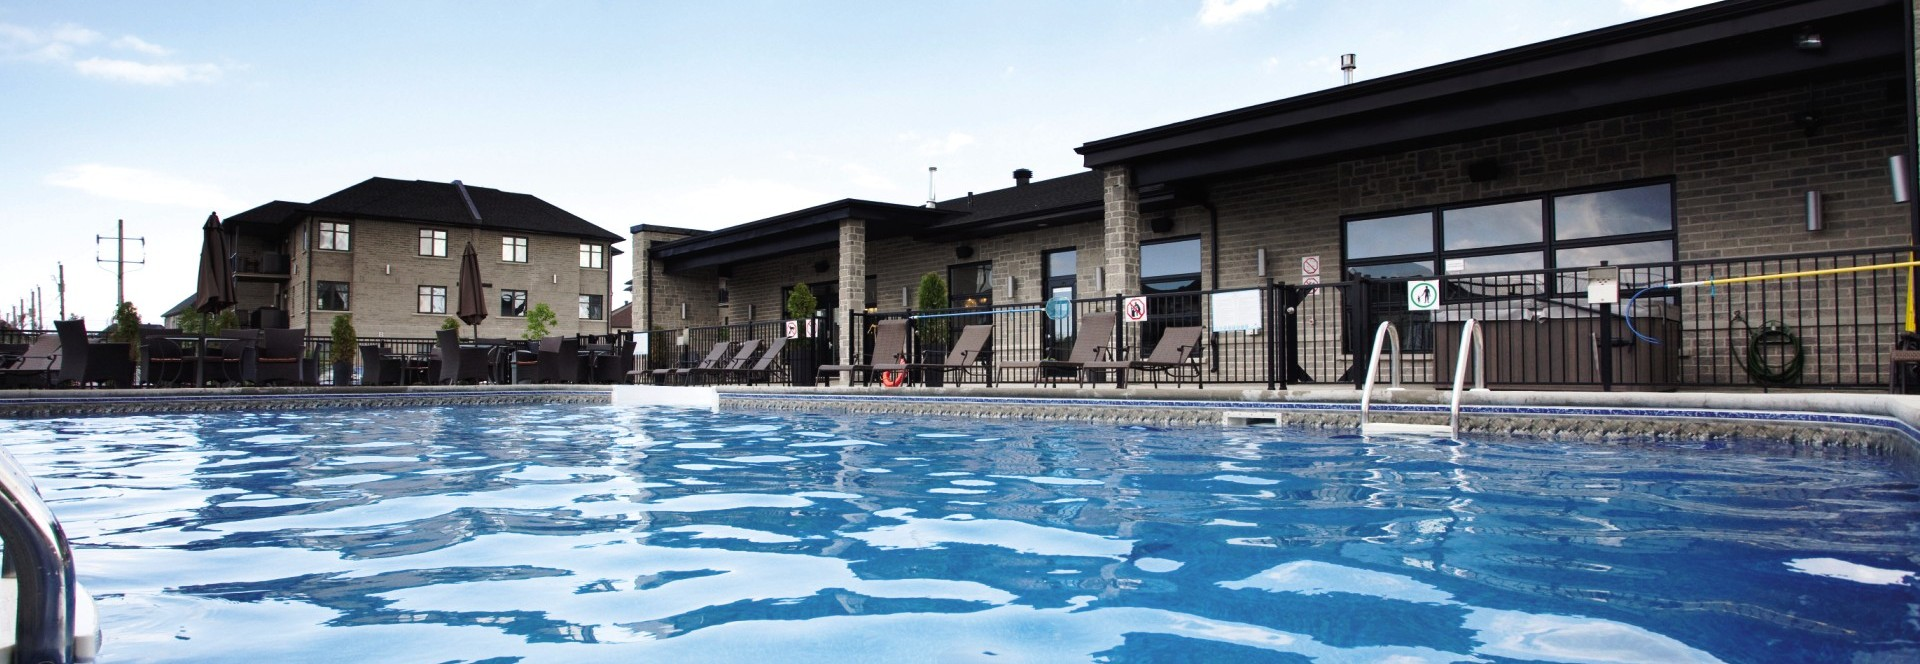 Services de location de condos du grand montr al for Club piscine montreal locations